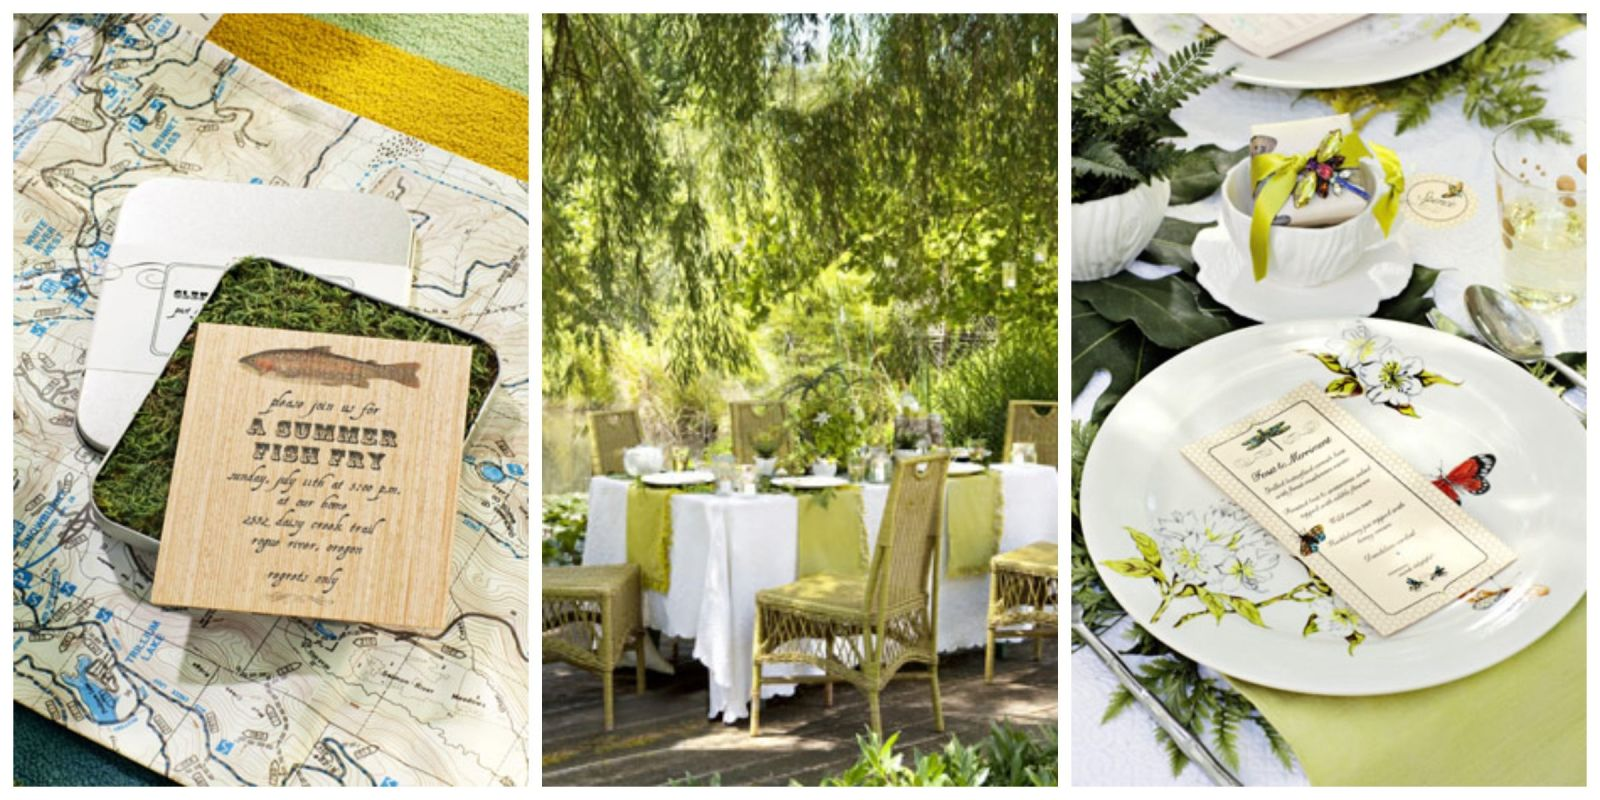 Outdoor dinner party decorations ideas for decorating for Outdoor dinner party decorating ideas